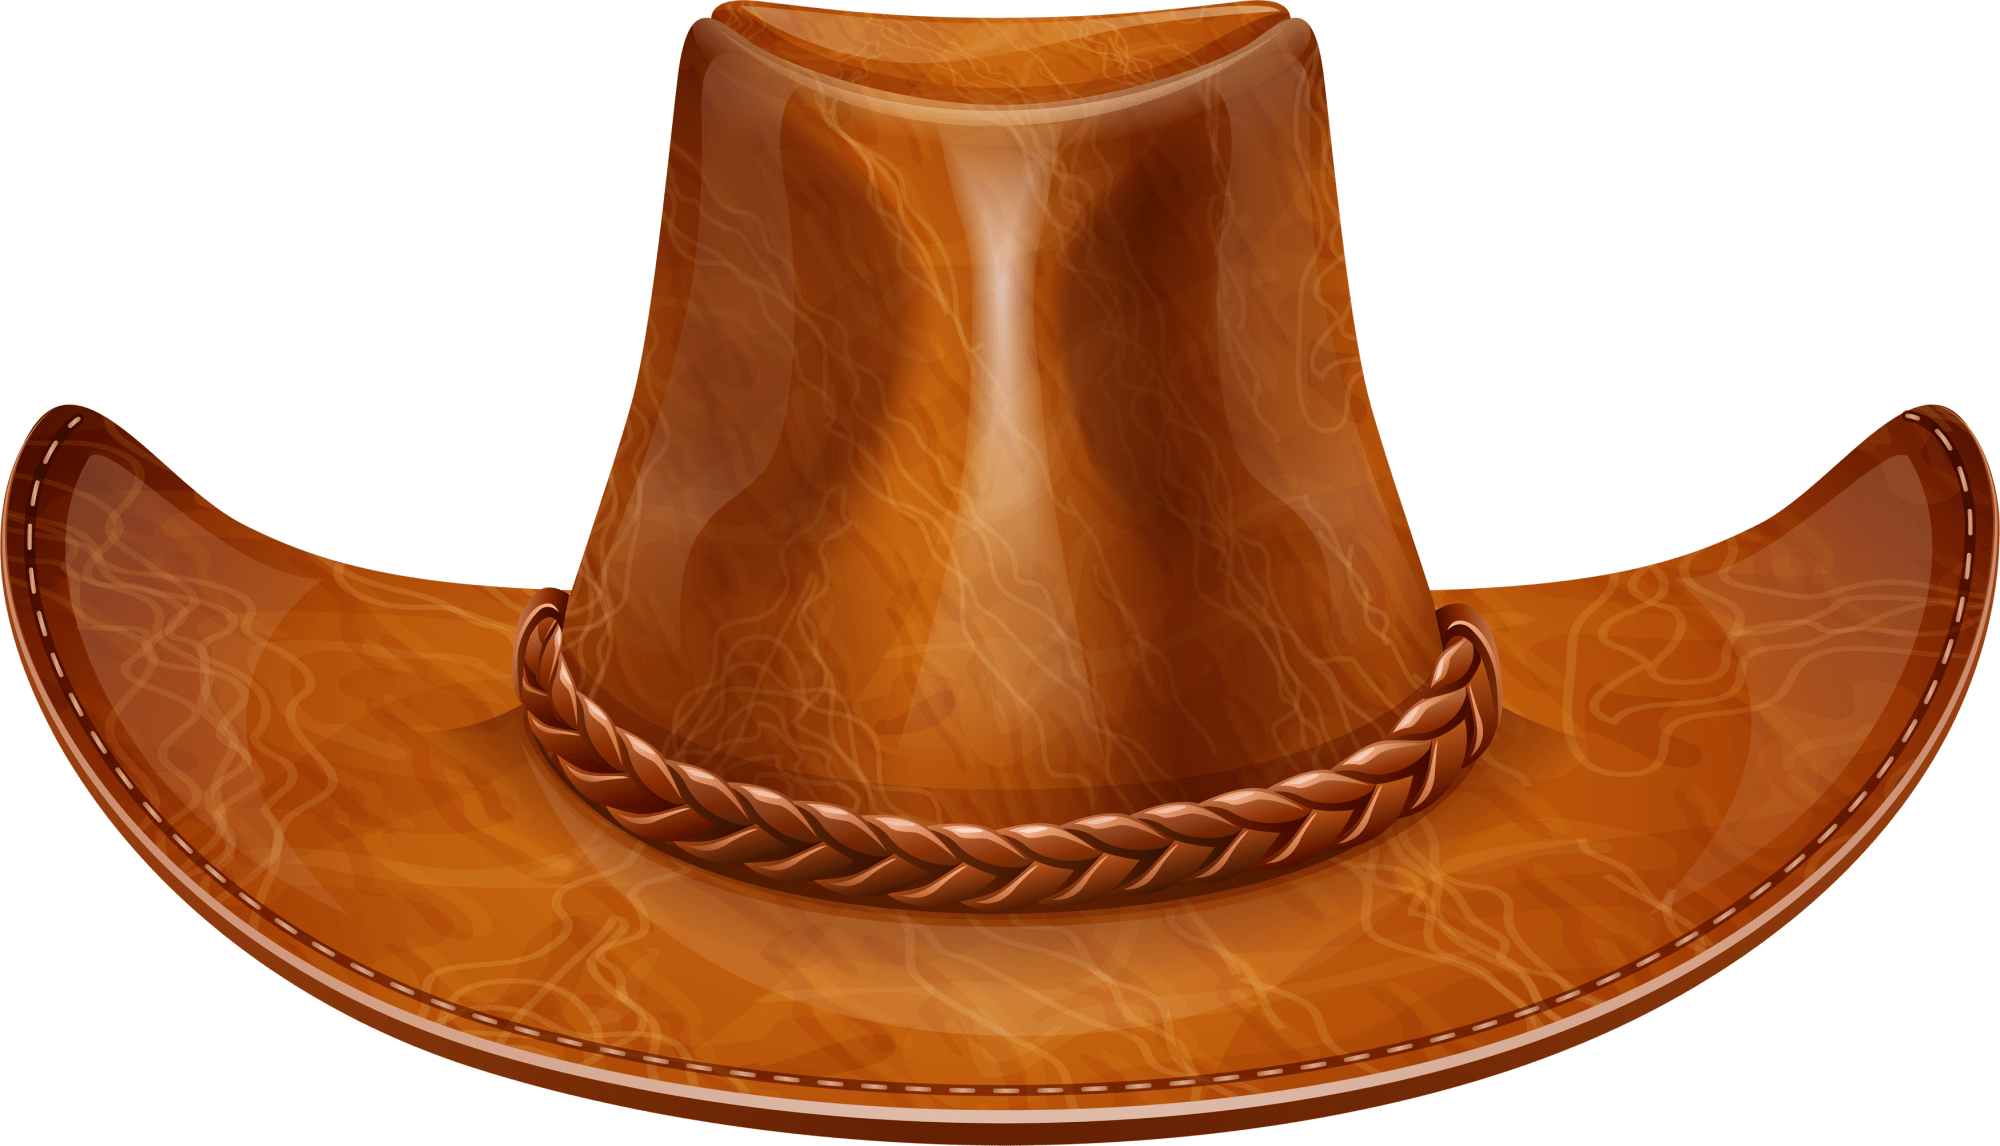 hight resolution of bootbarn cowboy hats hat png5706 png